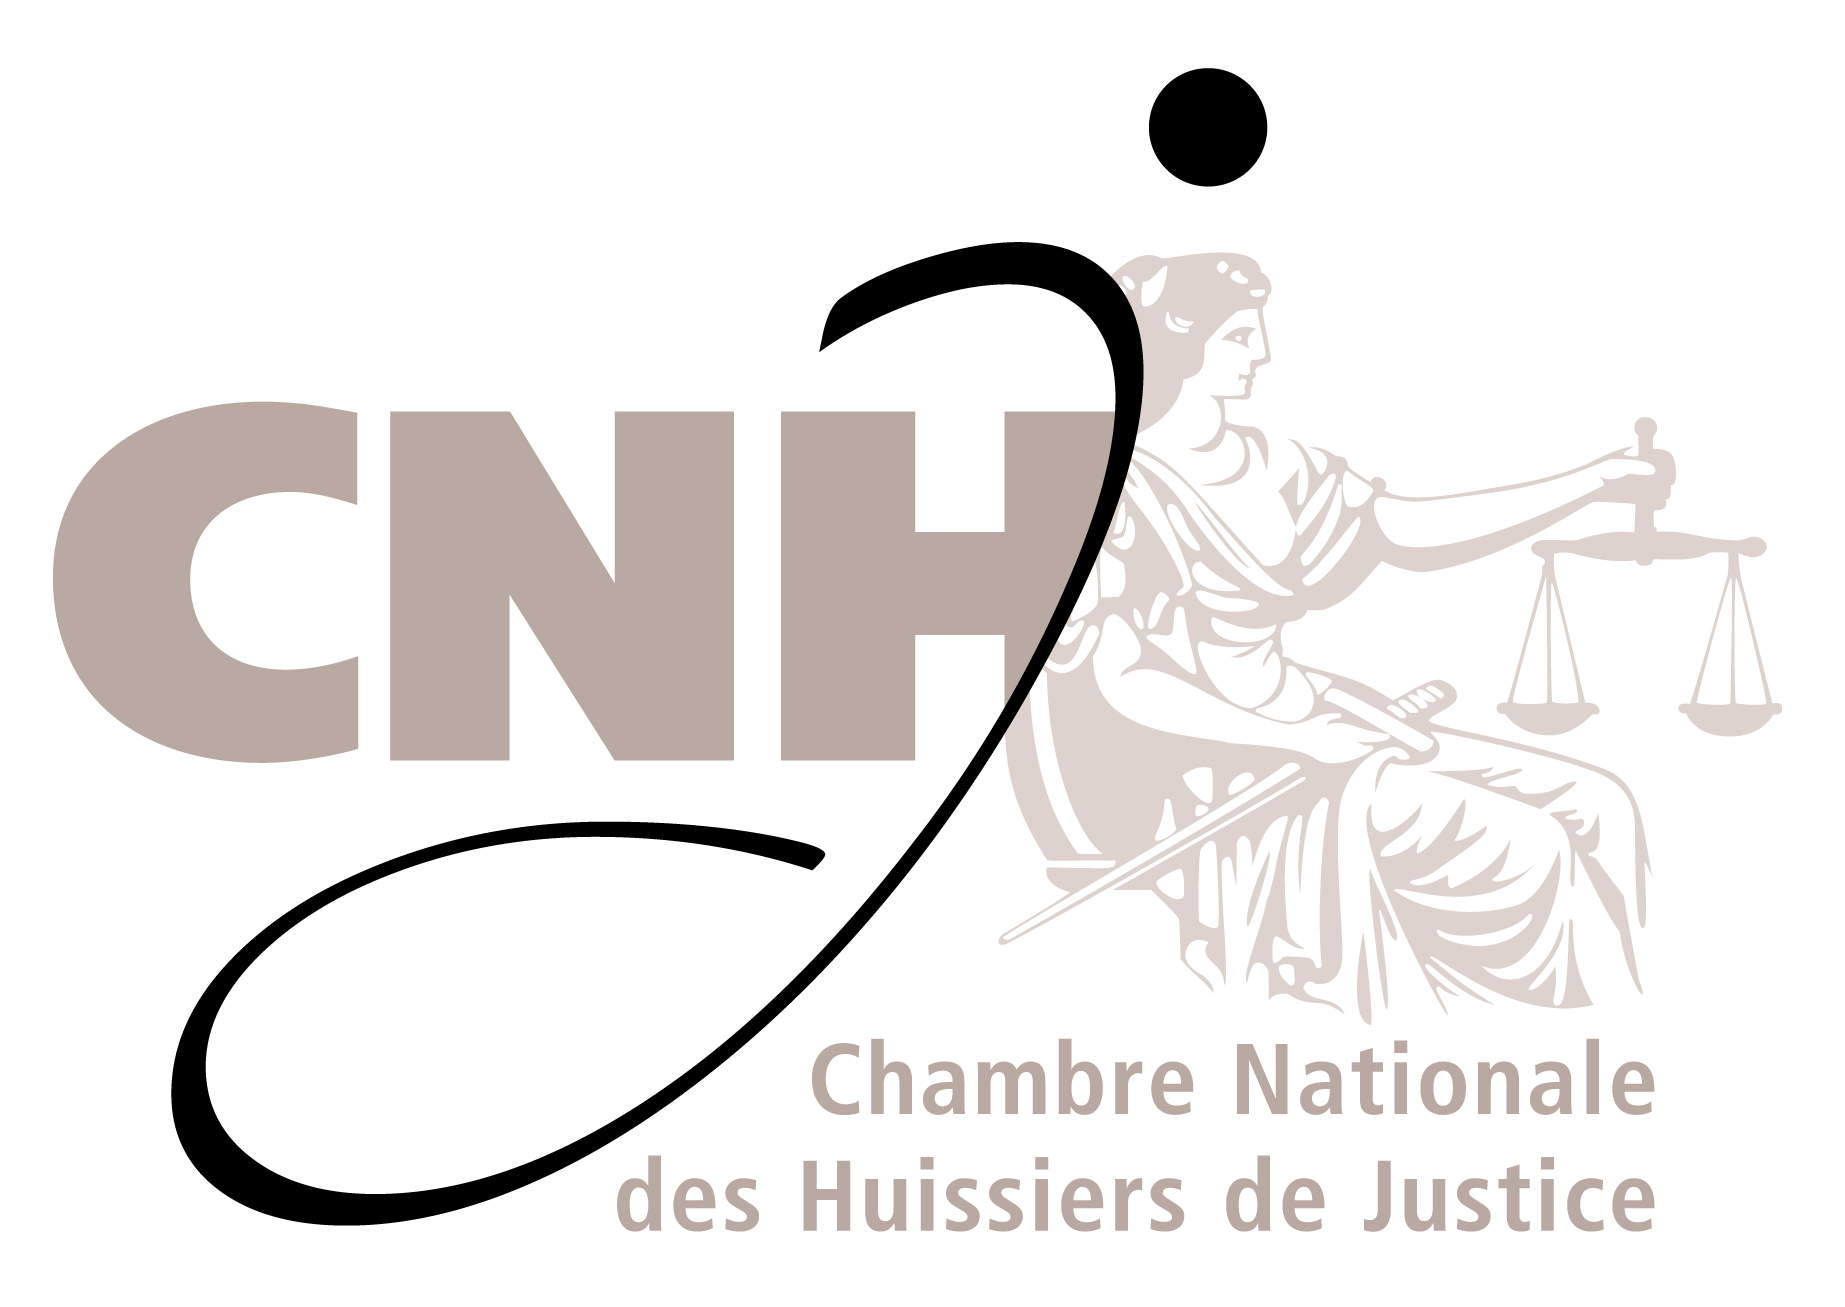 Actualit s application huissier de justice hdjbox - Huissier de justice chambre nationale ...